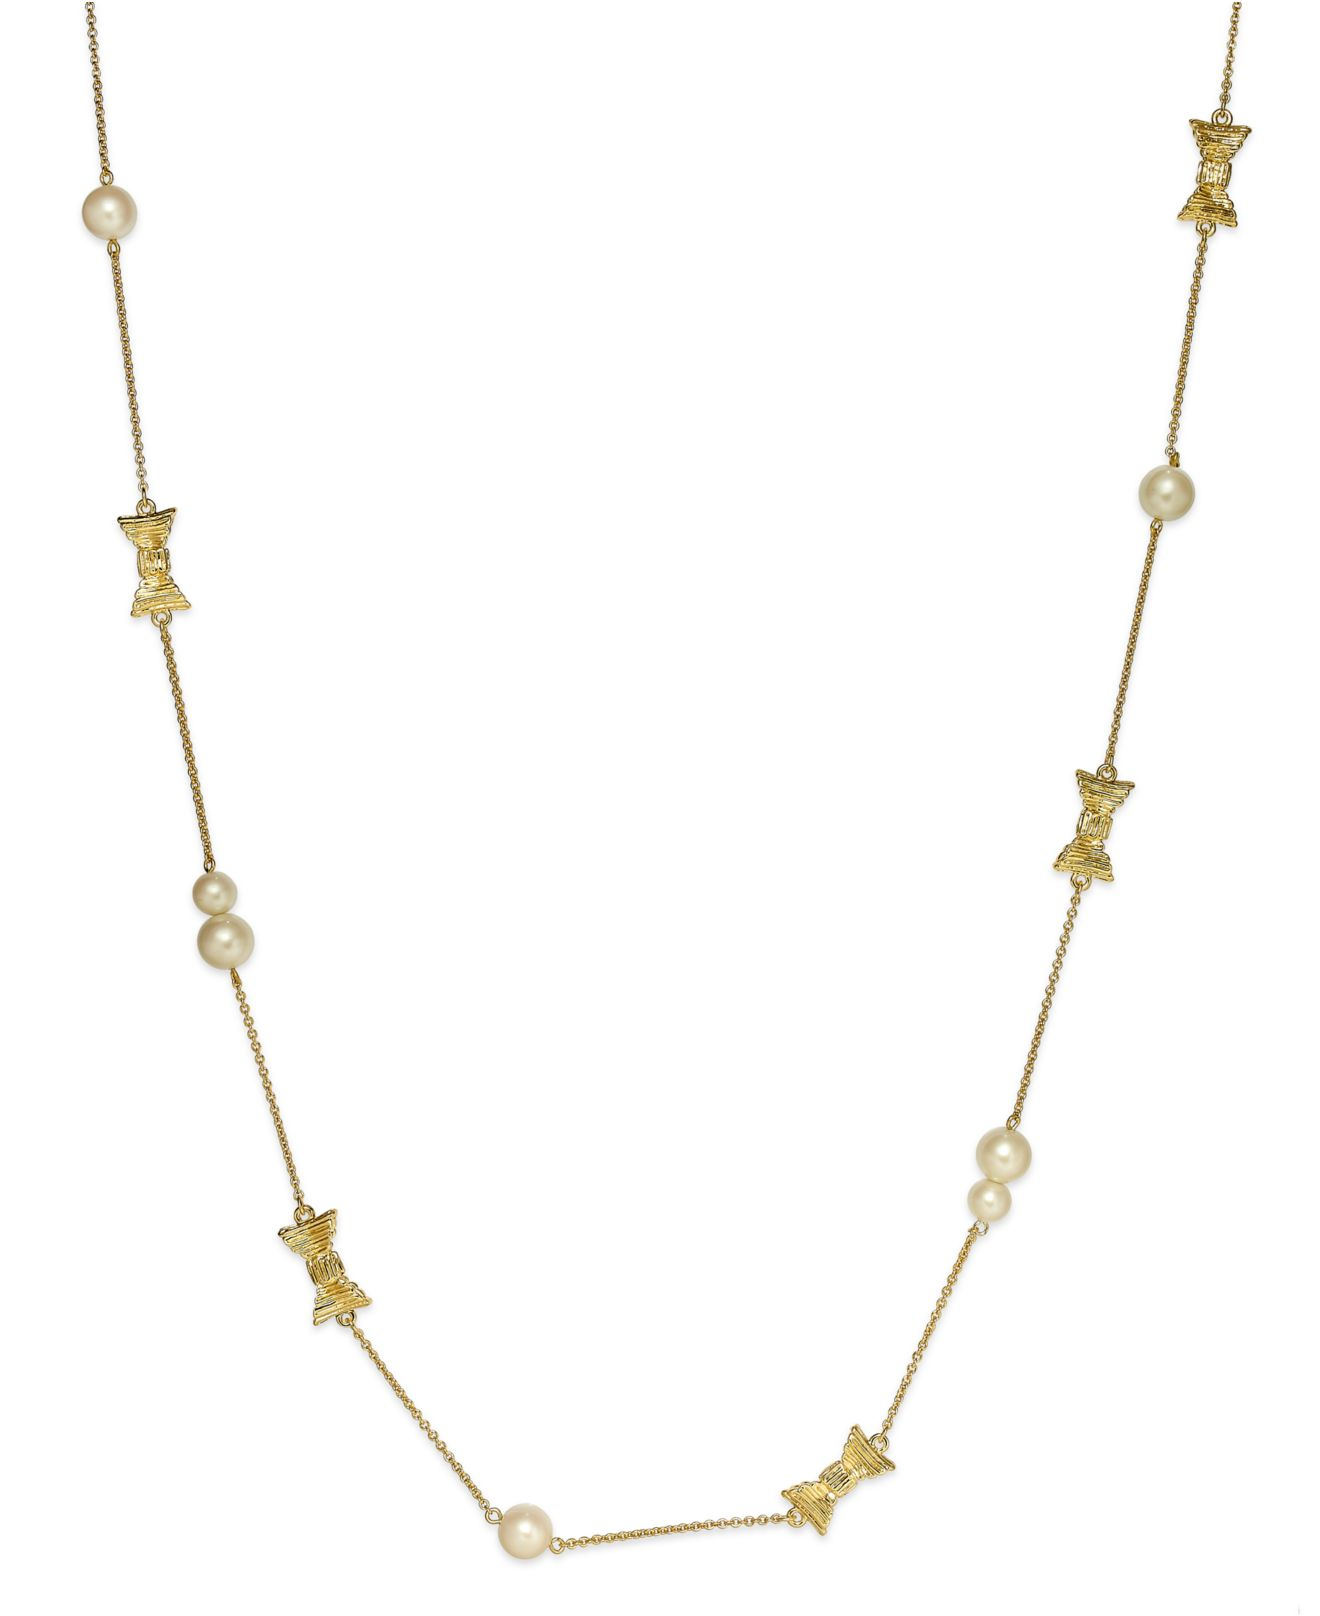 Kate Spade Pearl Bow Necklace: Kate Spade New York Gold-tone Bow And Imitation